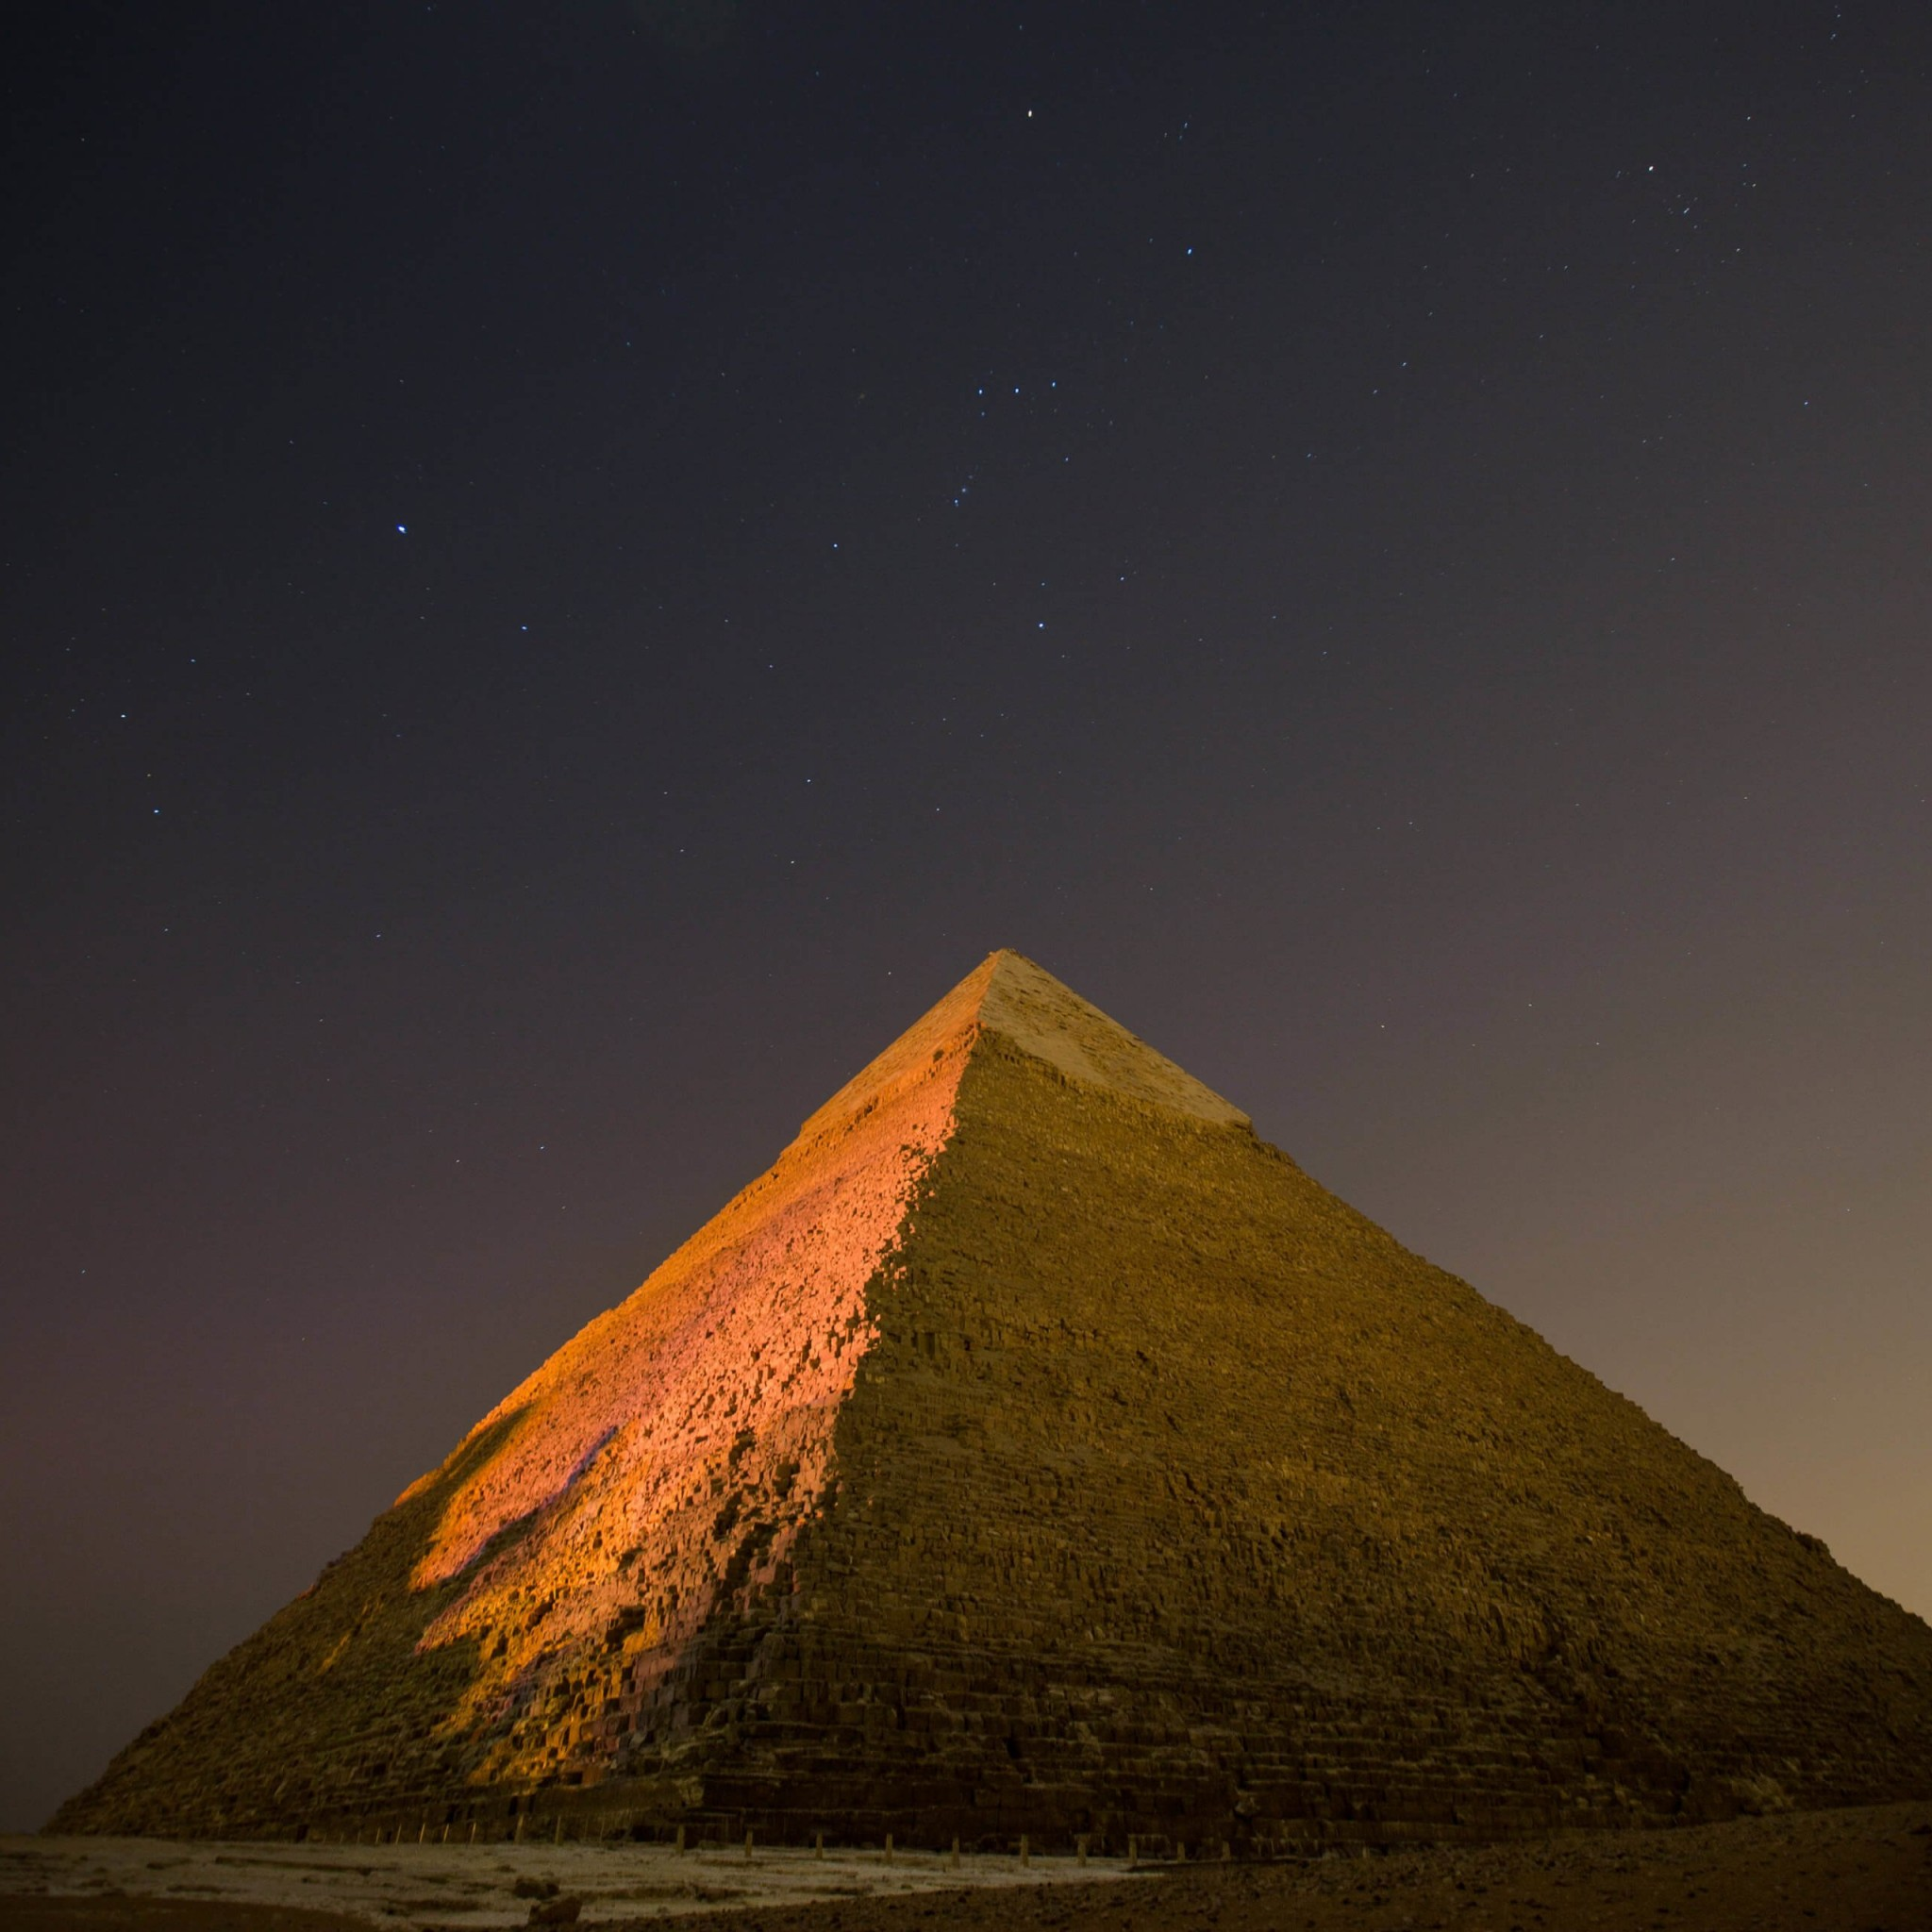 Pyramid by Night Wallpaper for Google Nexus 9